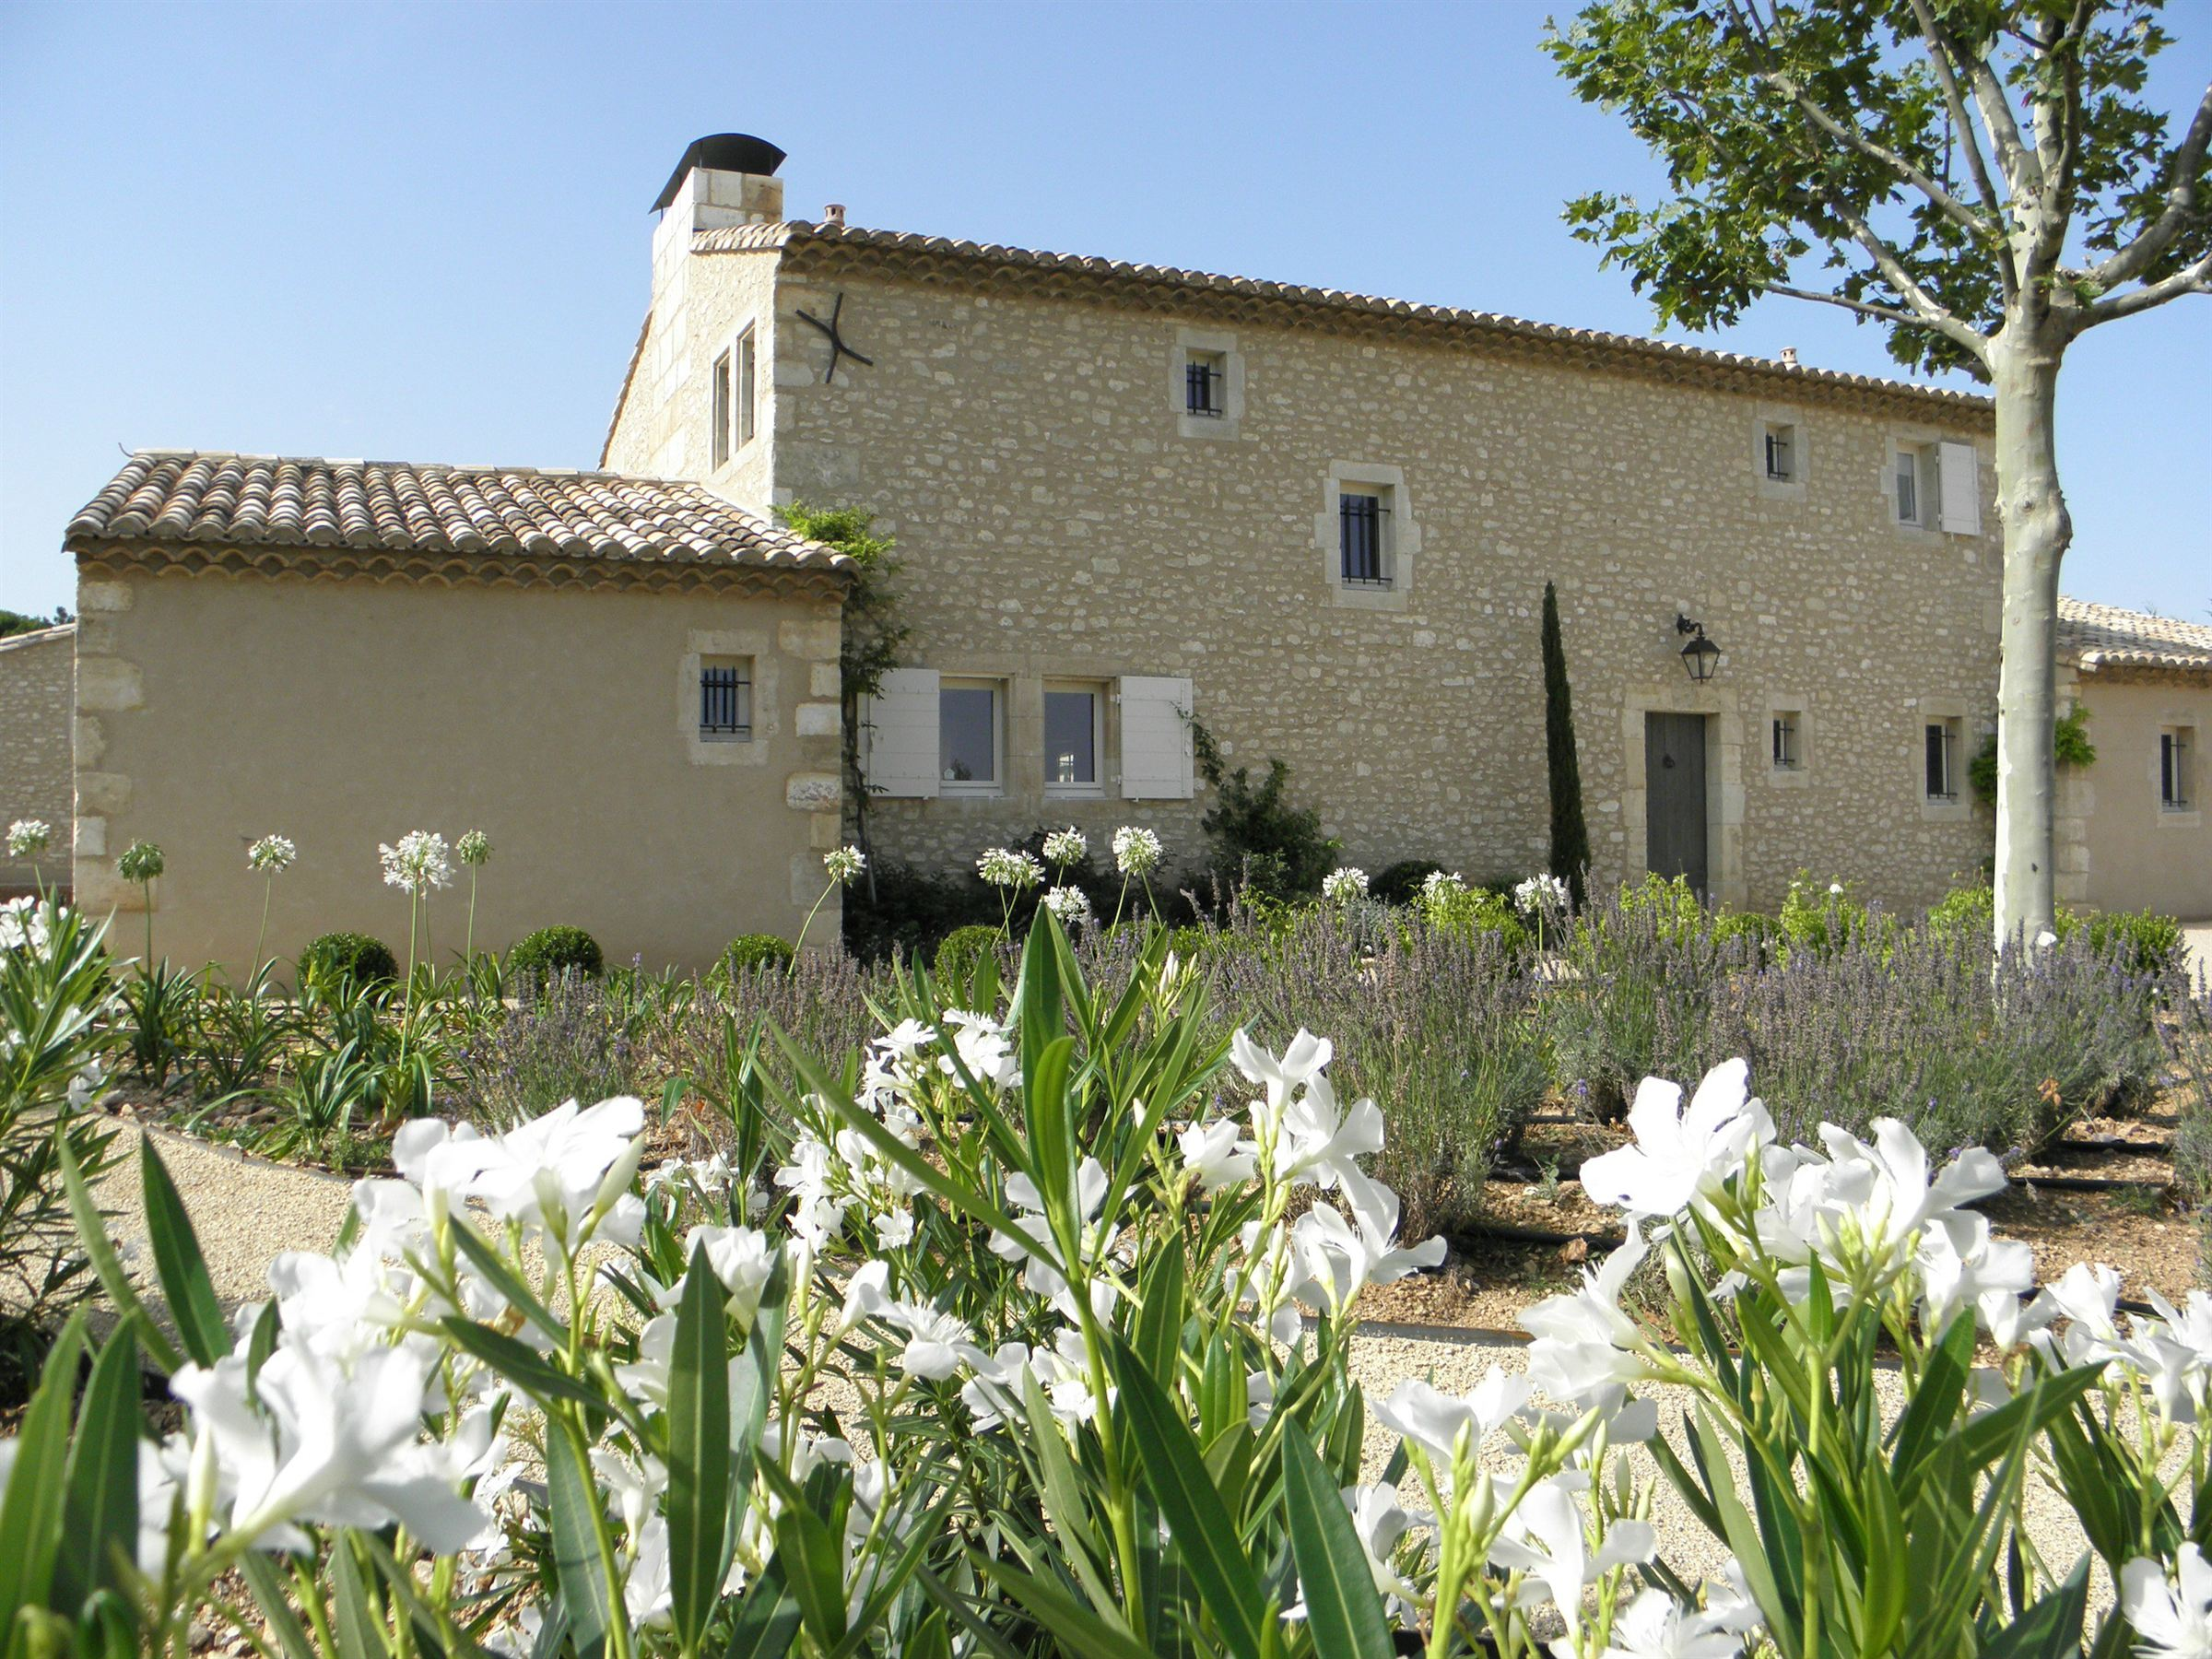 Single Family Home for Sale at Recent country house In Eygalieres Eygalieres, Provence-Alpes-Cote D'Azur 13810 France